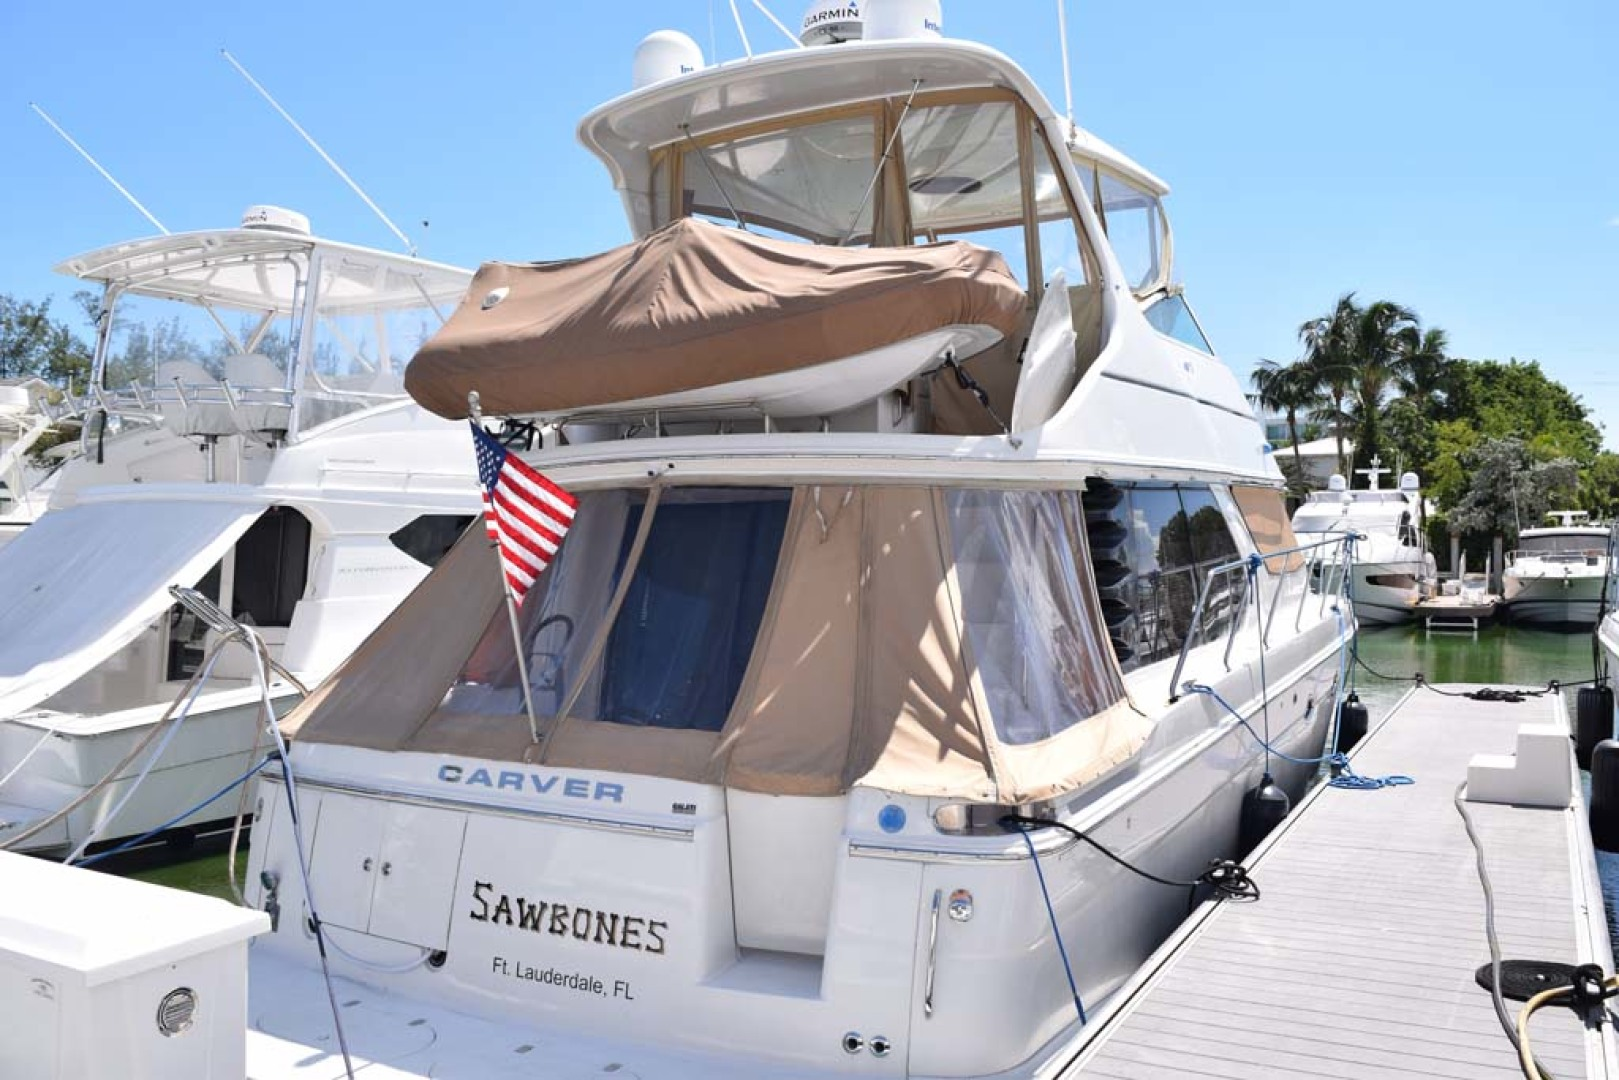 Carver-Voyager 2005-Sawbones Fort Lauderdale-Florida-United States-Transom Door-1068991 | Thumbnail